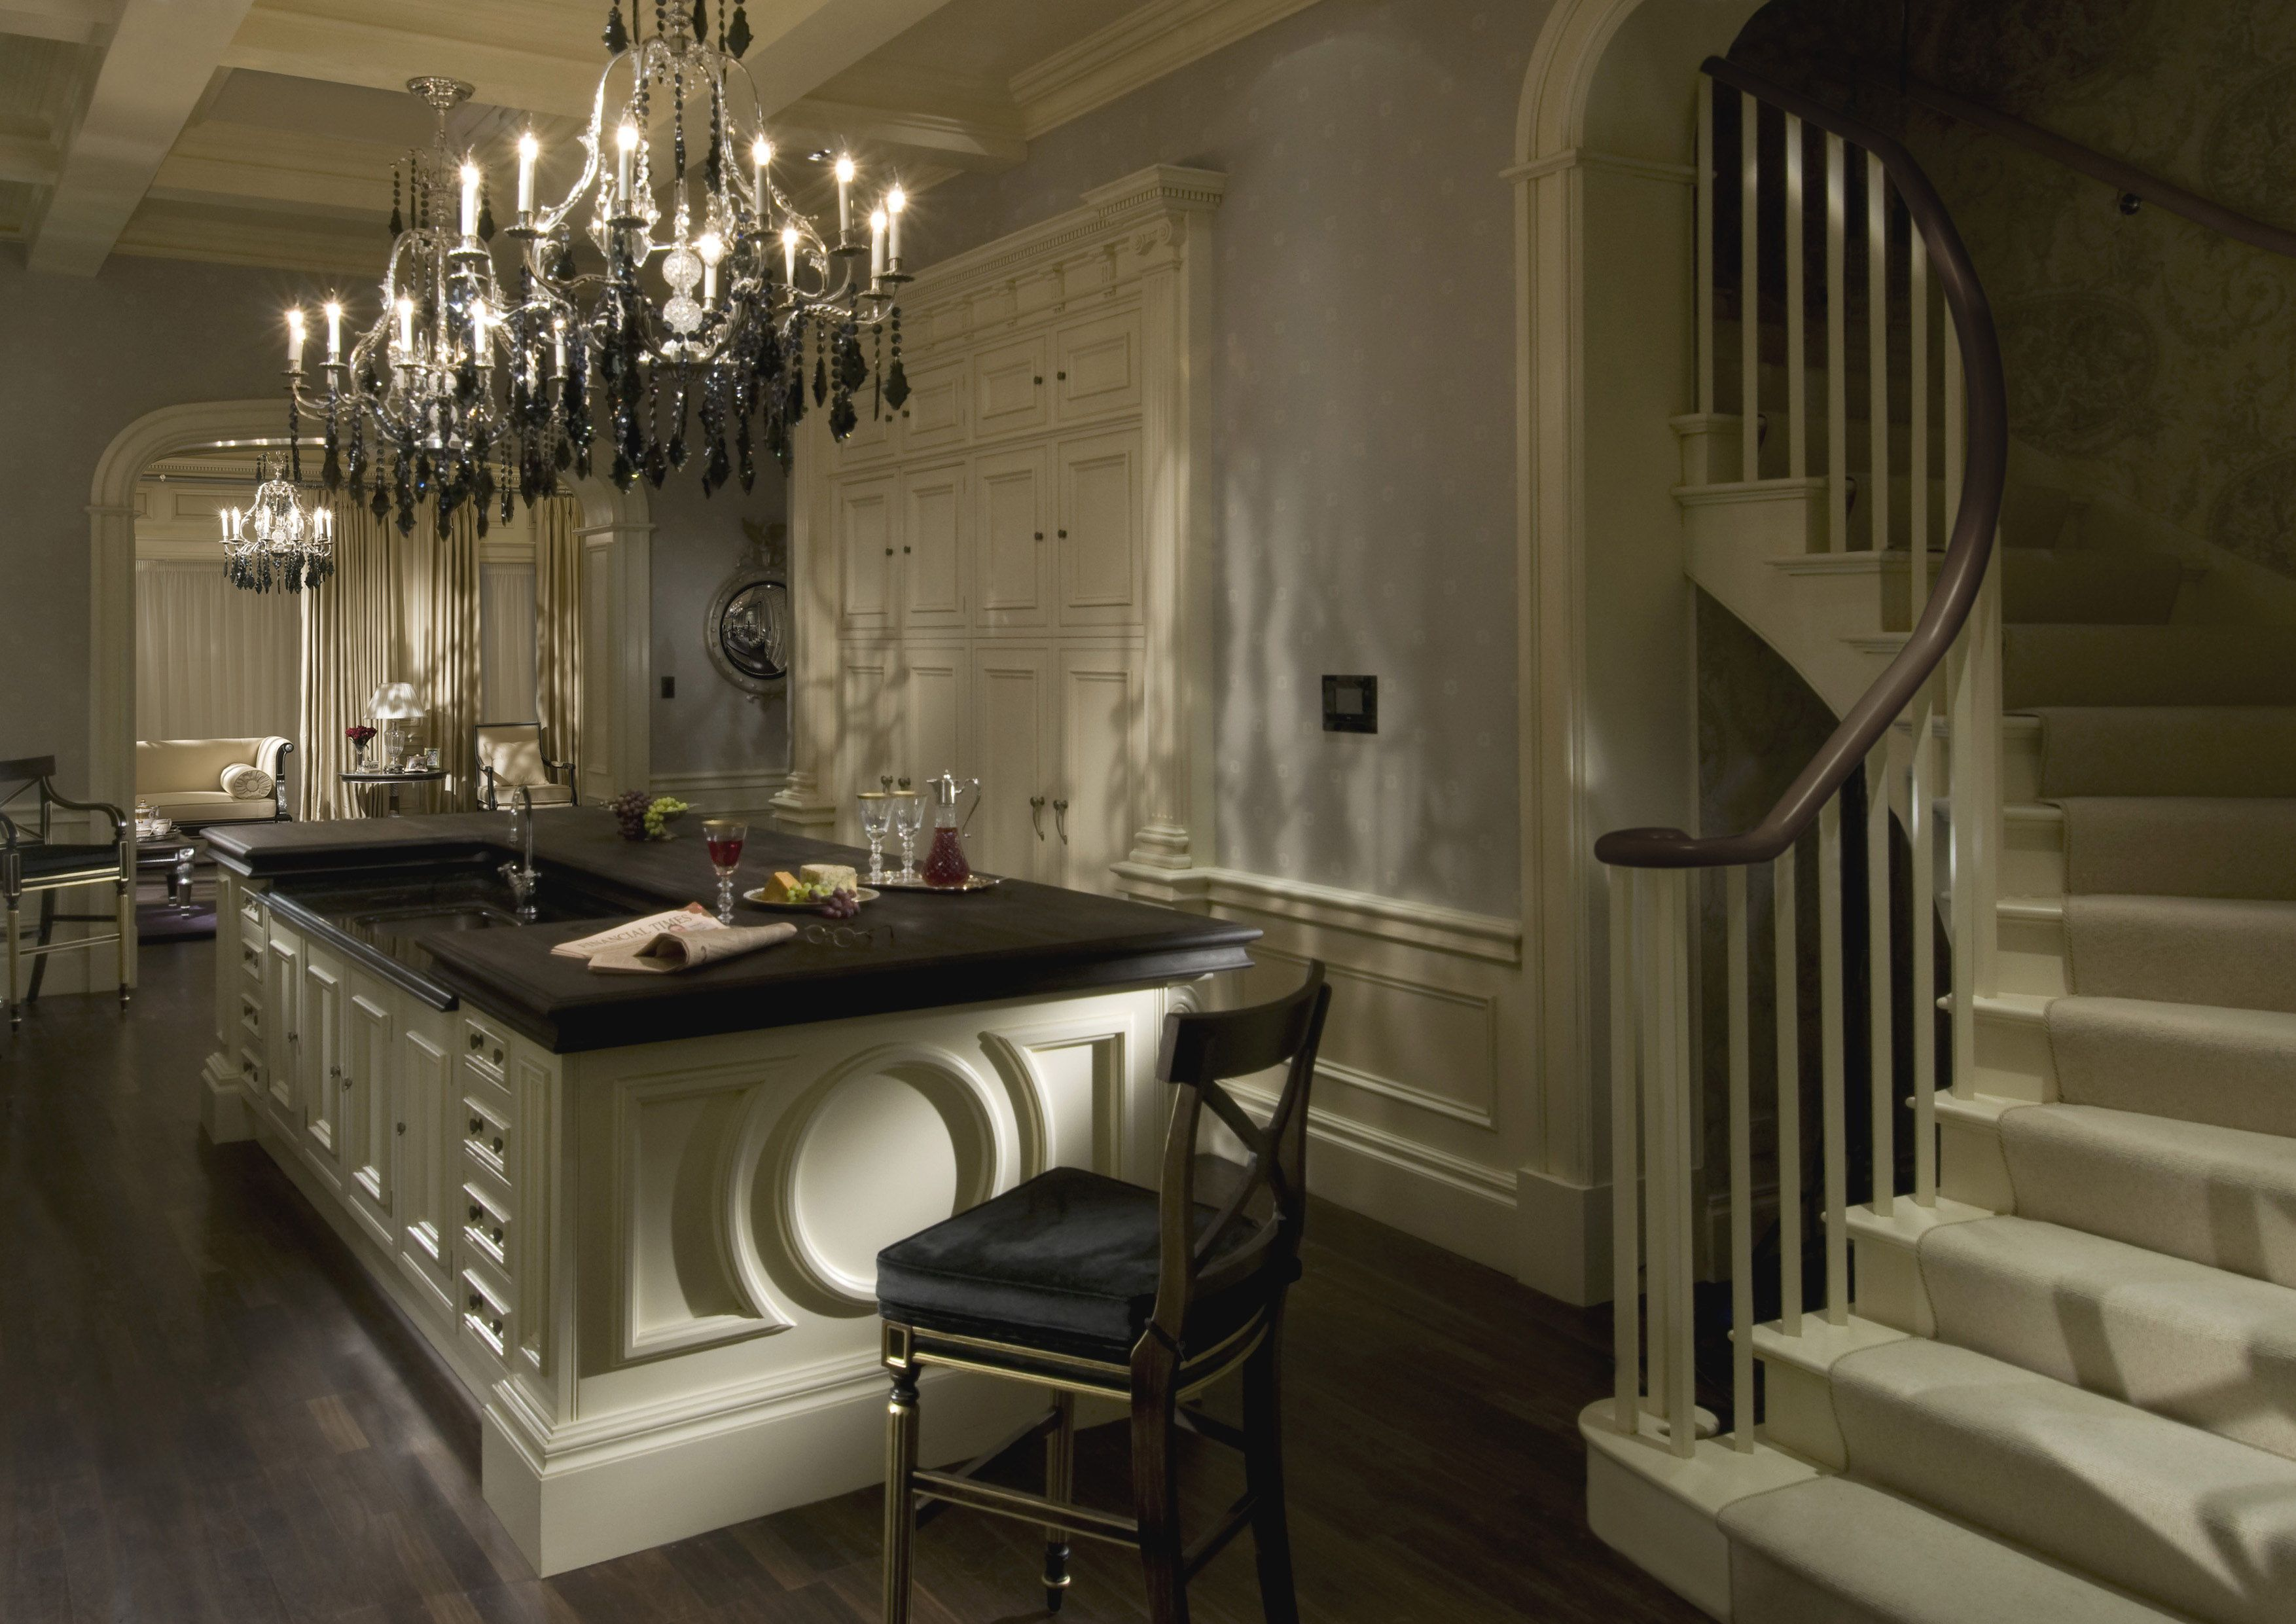 IVORY KITCHEN & LOUNGE Architectural kitchen in ivory with British ...